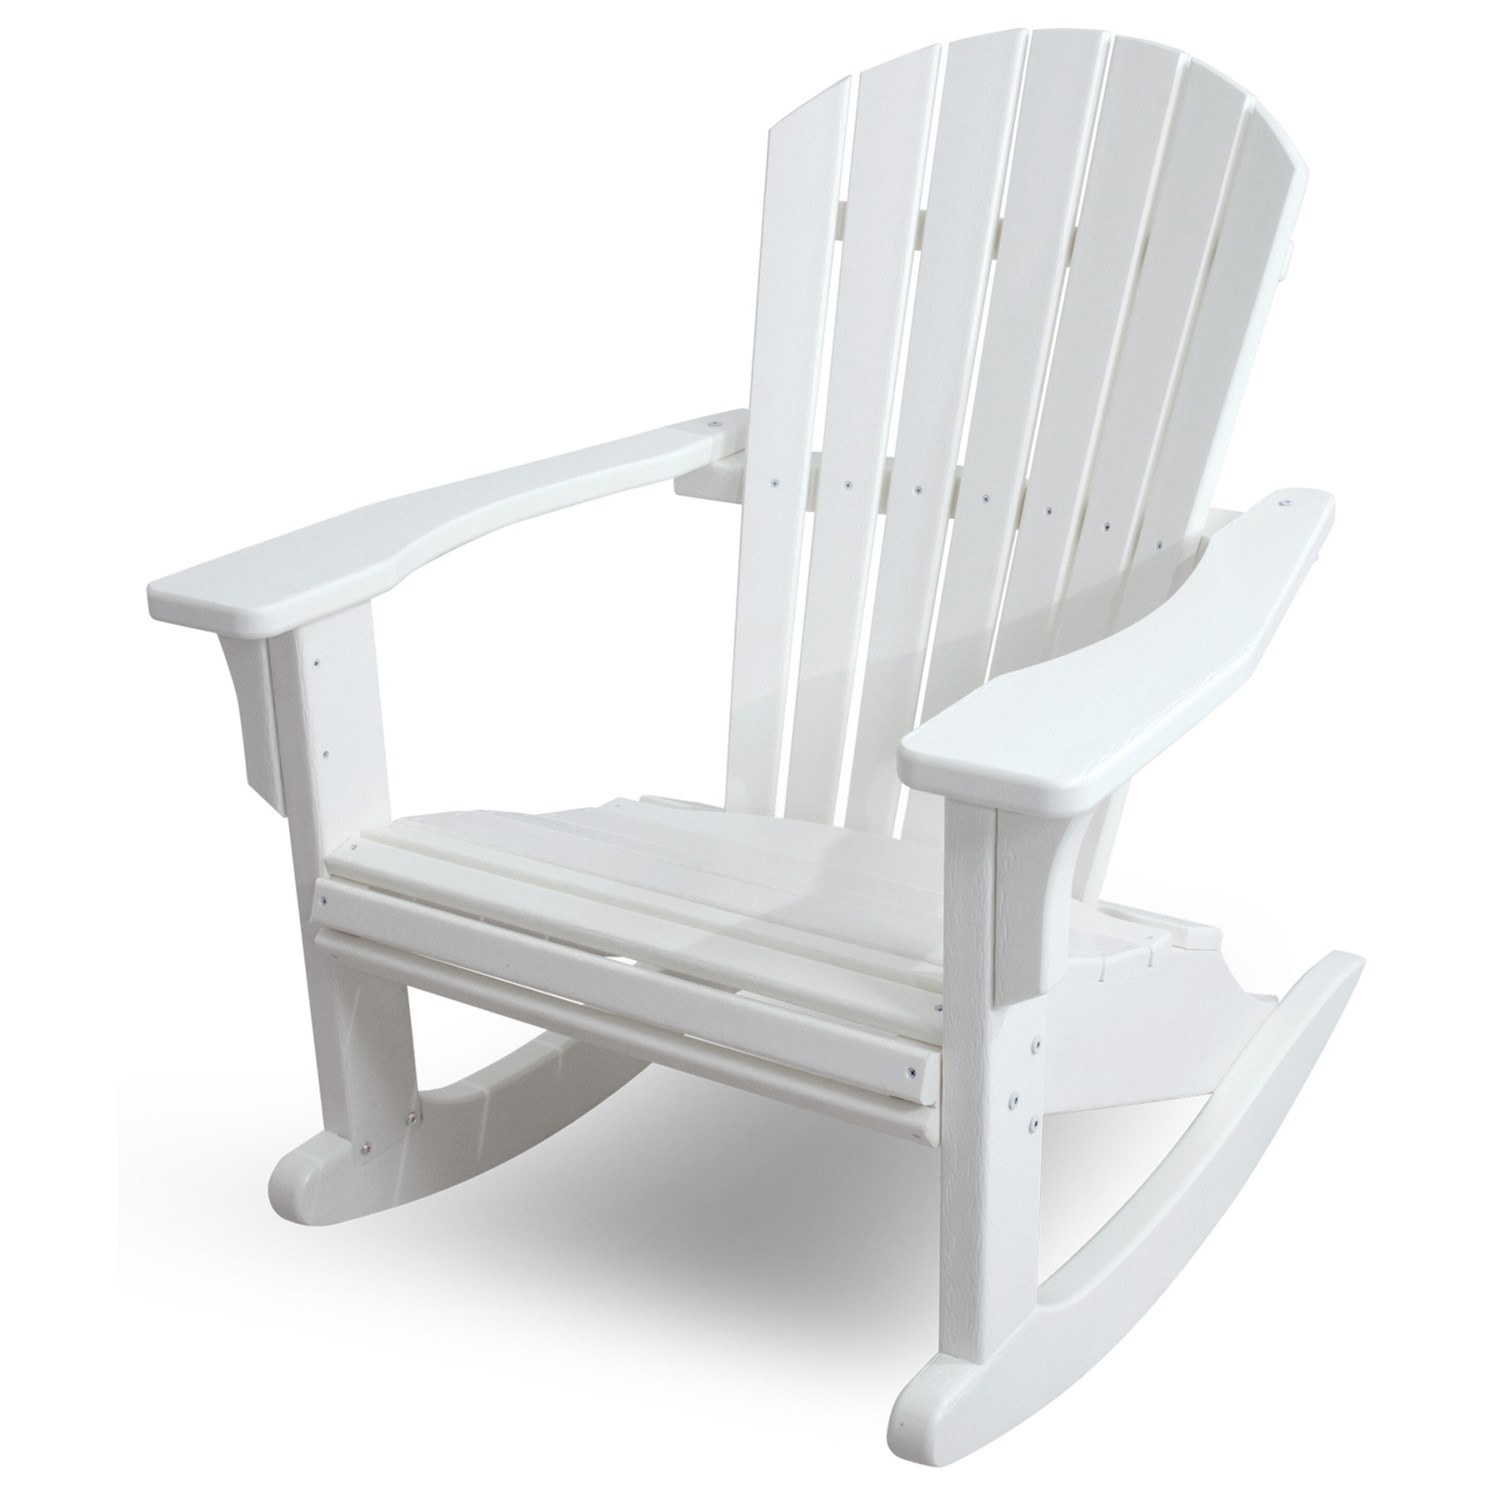 Polywood Rocking Chairs Polywood Seashell Adirondack Rocking Chair Save 31